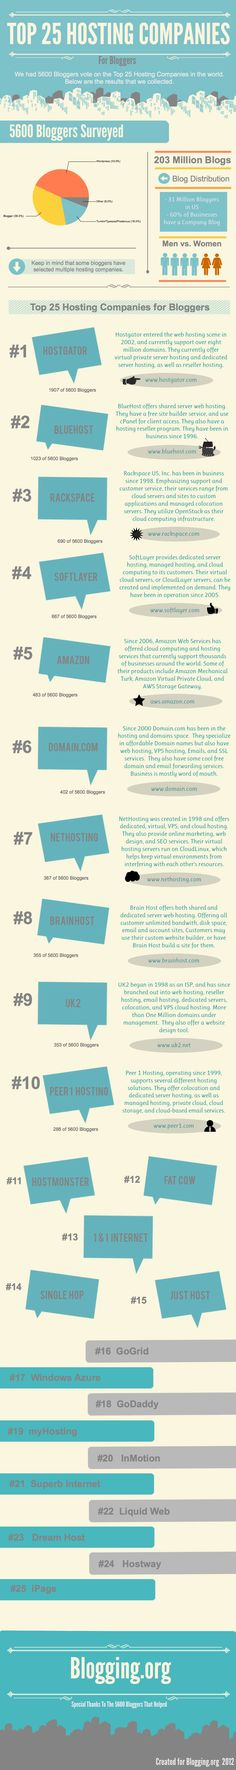 Top 25 Web Hosting Providers [#INFOGRAPHIC] | The Best Infographic Blog